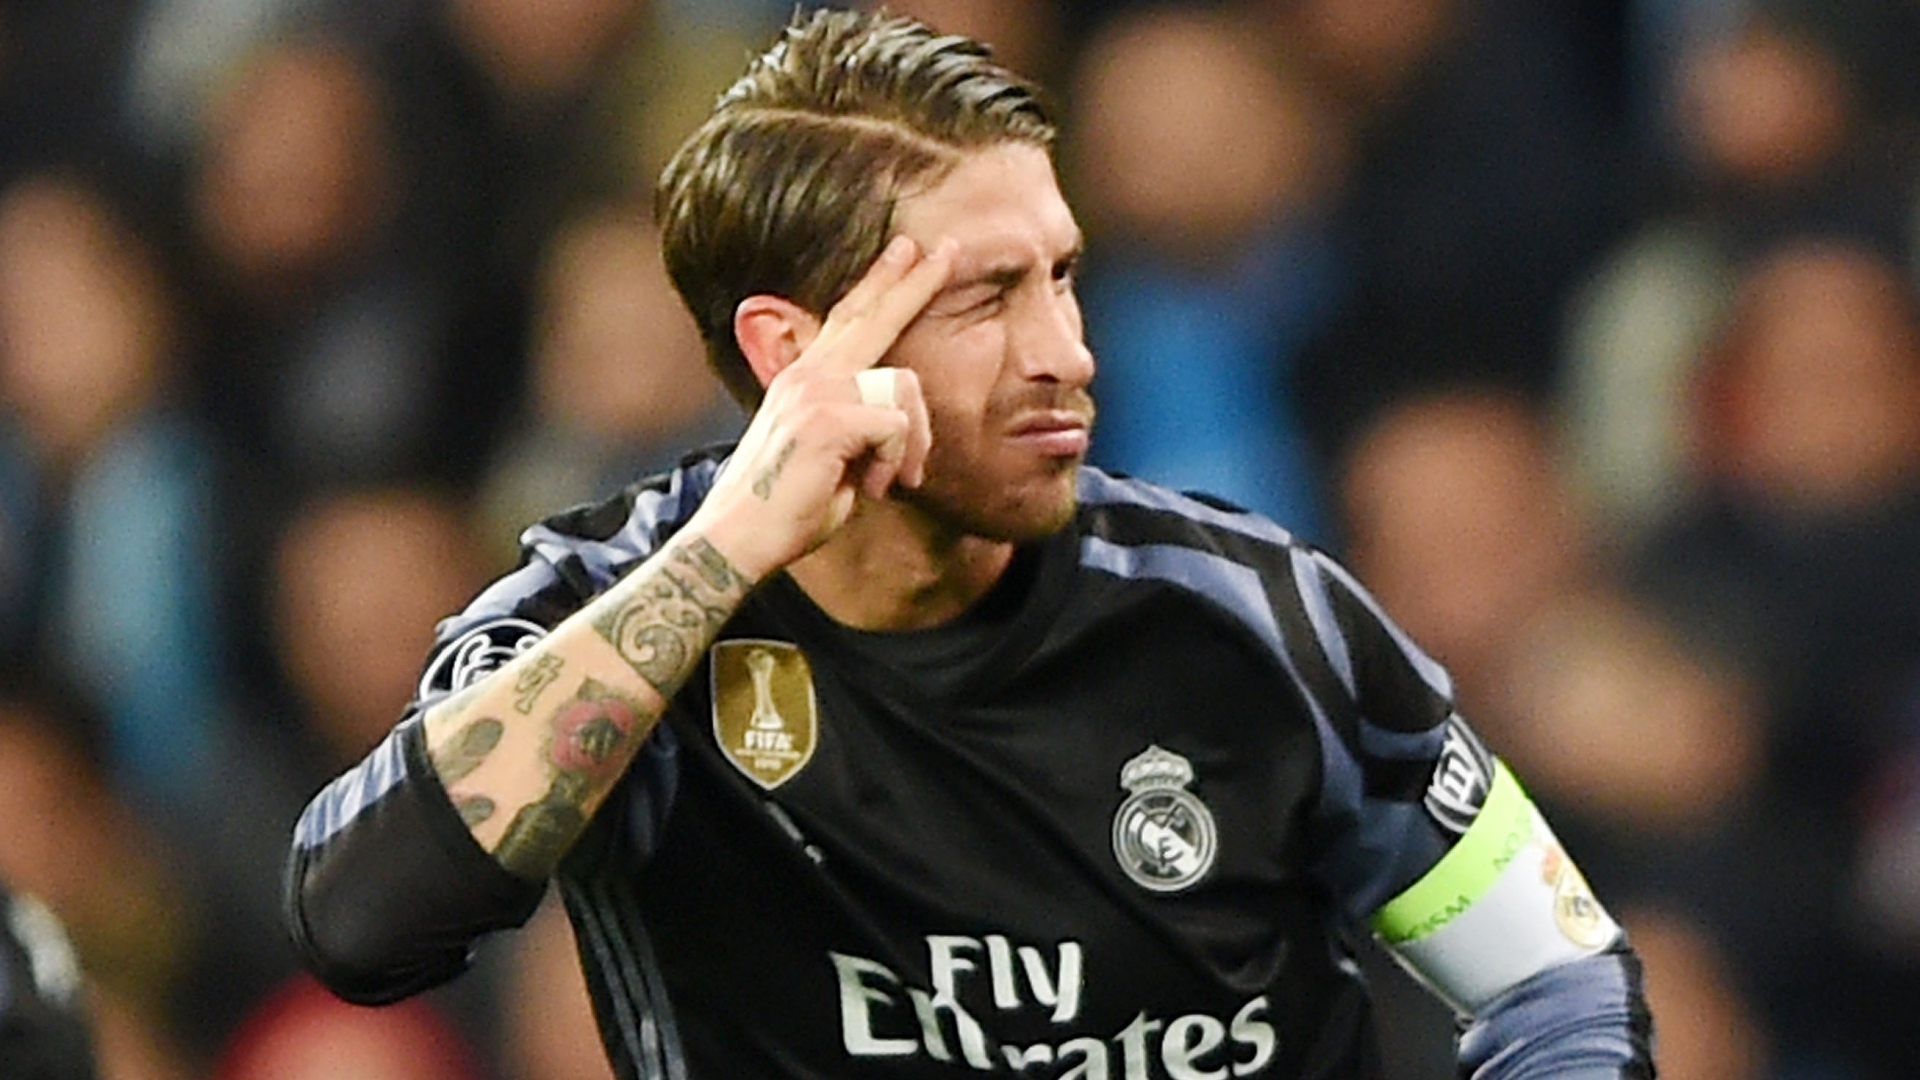 I can emulate unstoppable ramos says madrid target - Sergio madrid ...